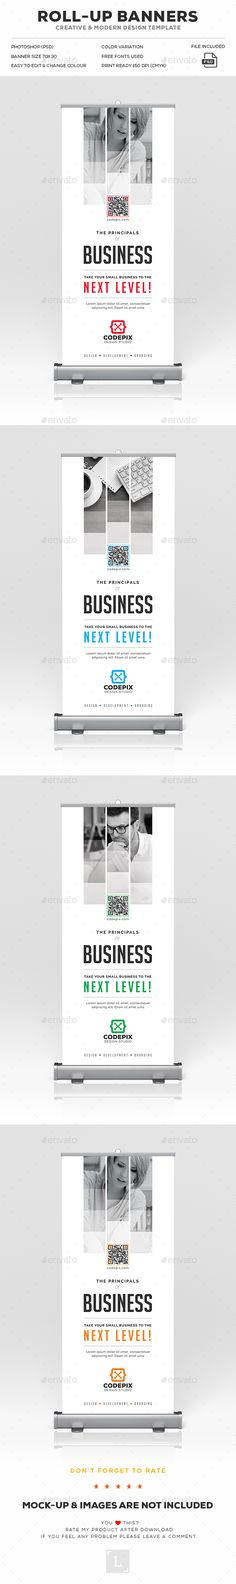 Corporate Roll-Up Banner Template PSD. Download here: https://graphicriver.net/item/corporate-rollup-banner/17543892?ref=ksioks